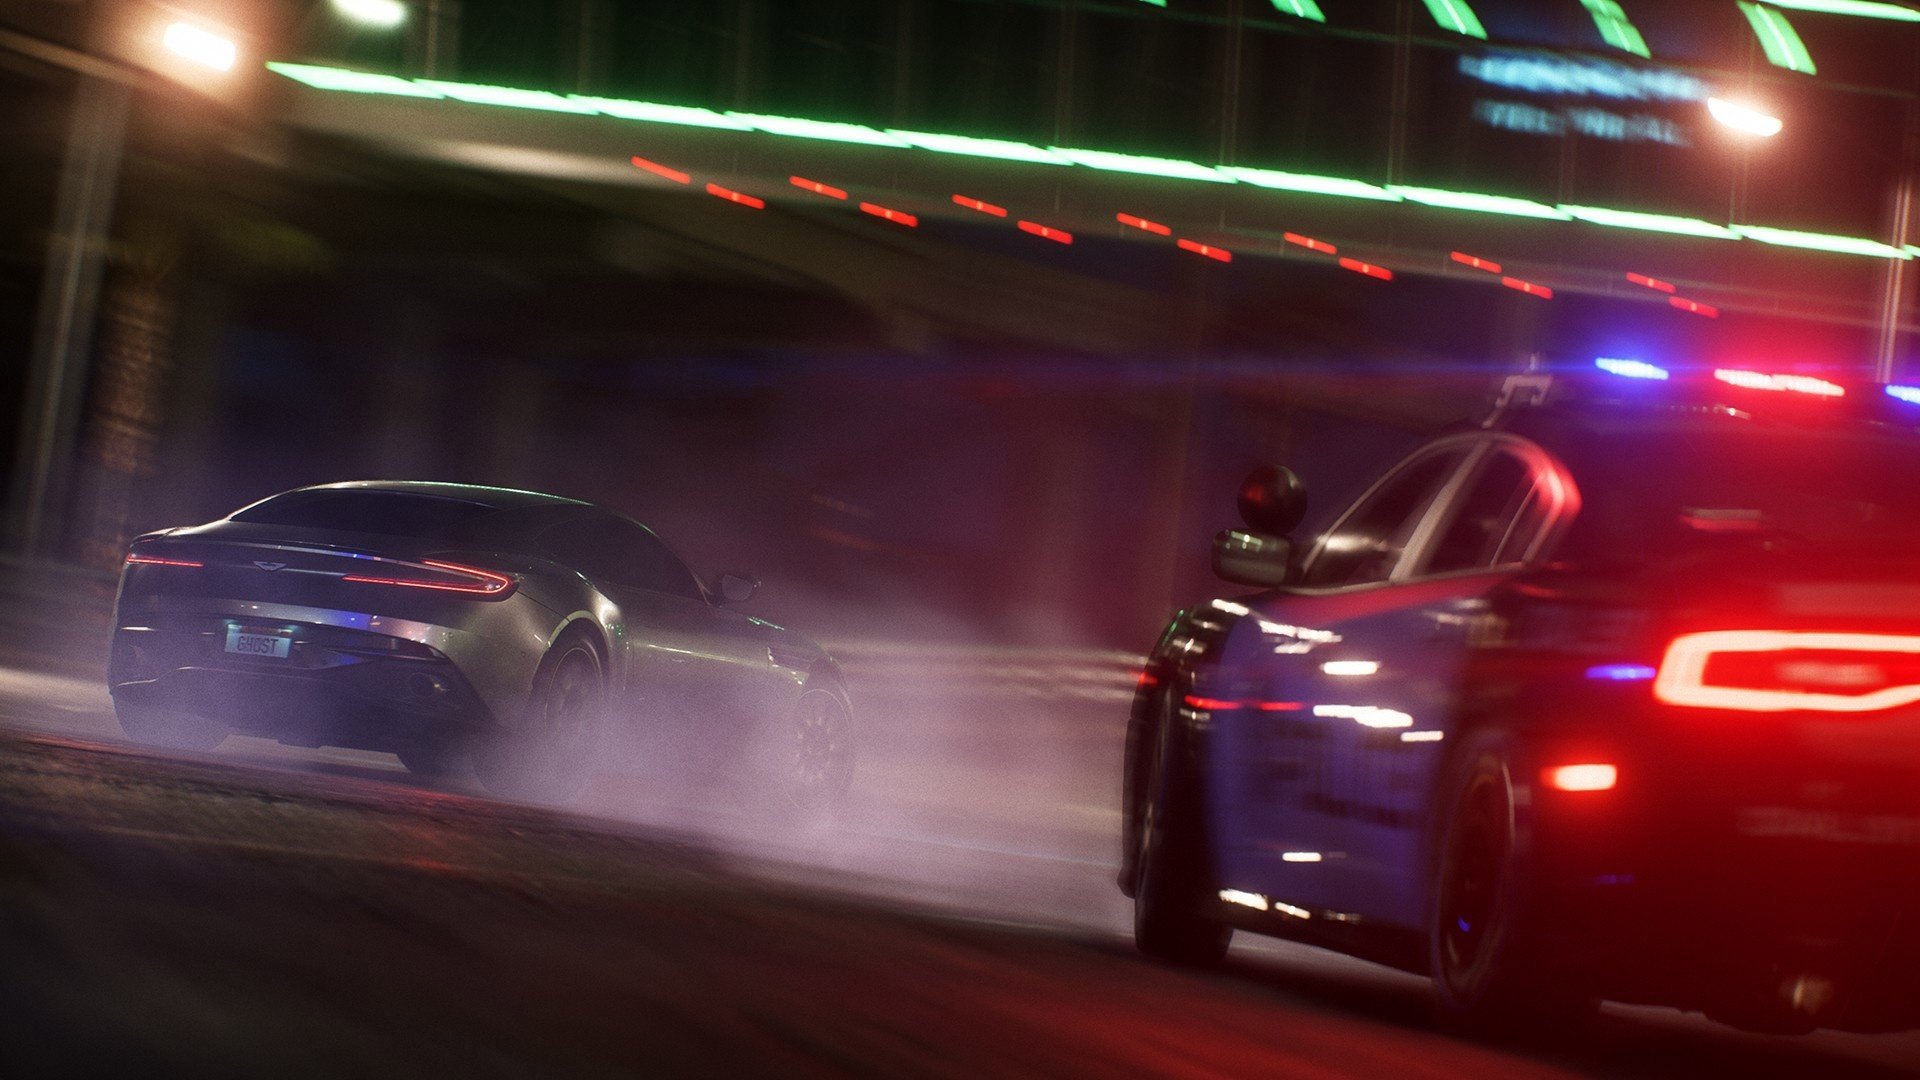 Free Need For Speed Payback Wallpaper in 1920x1080